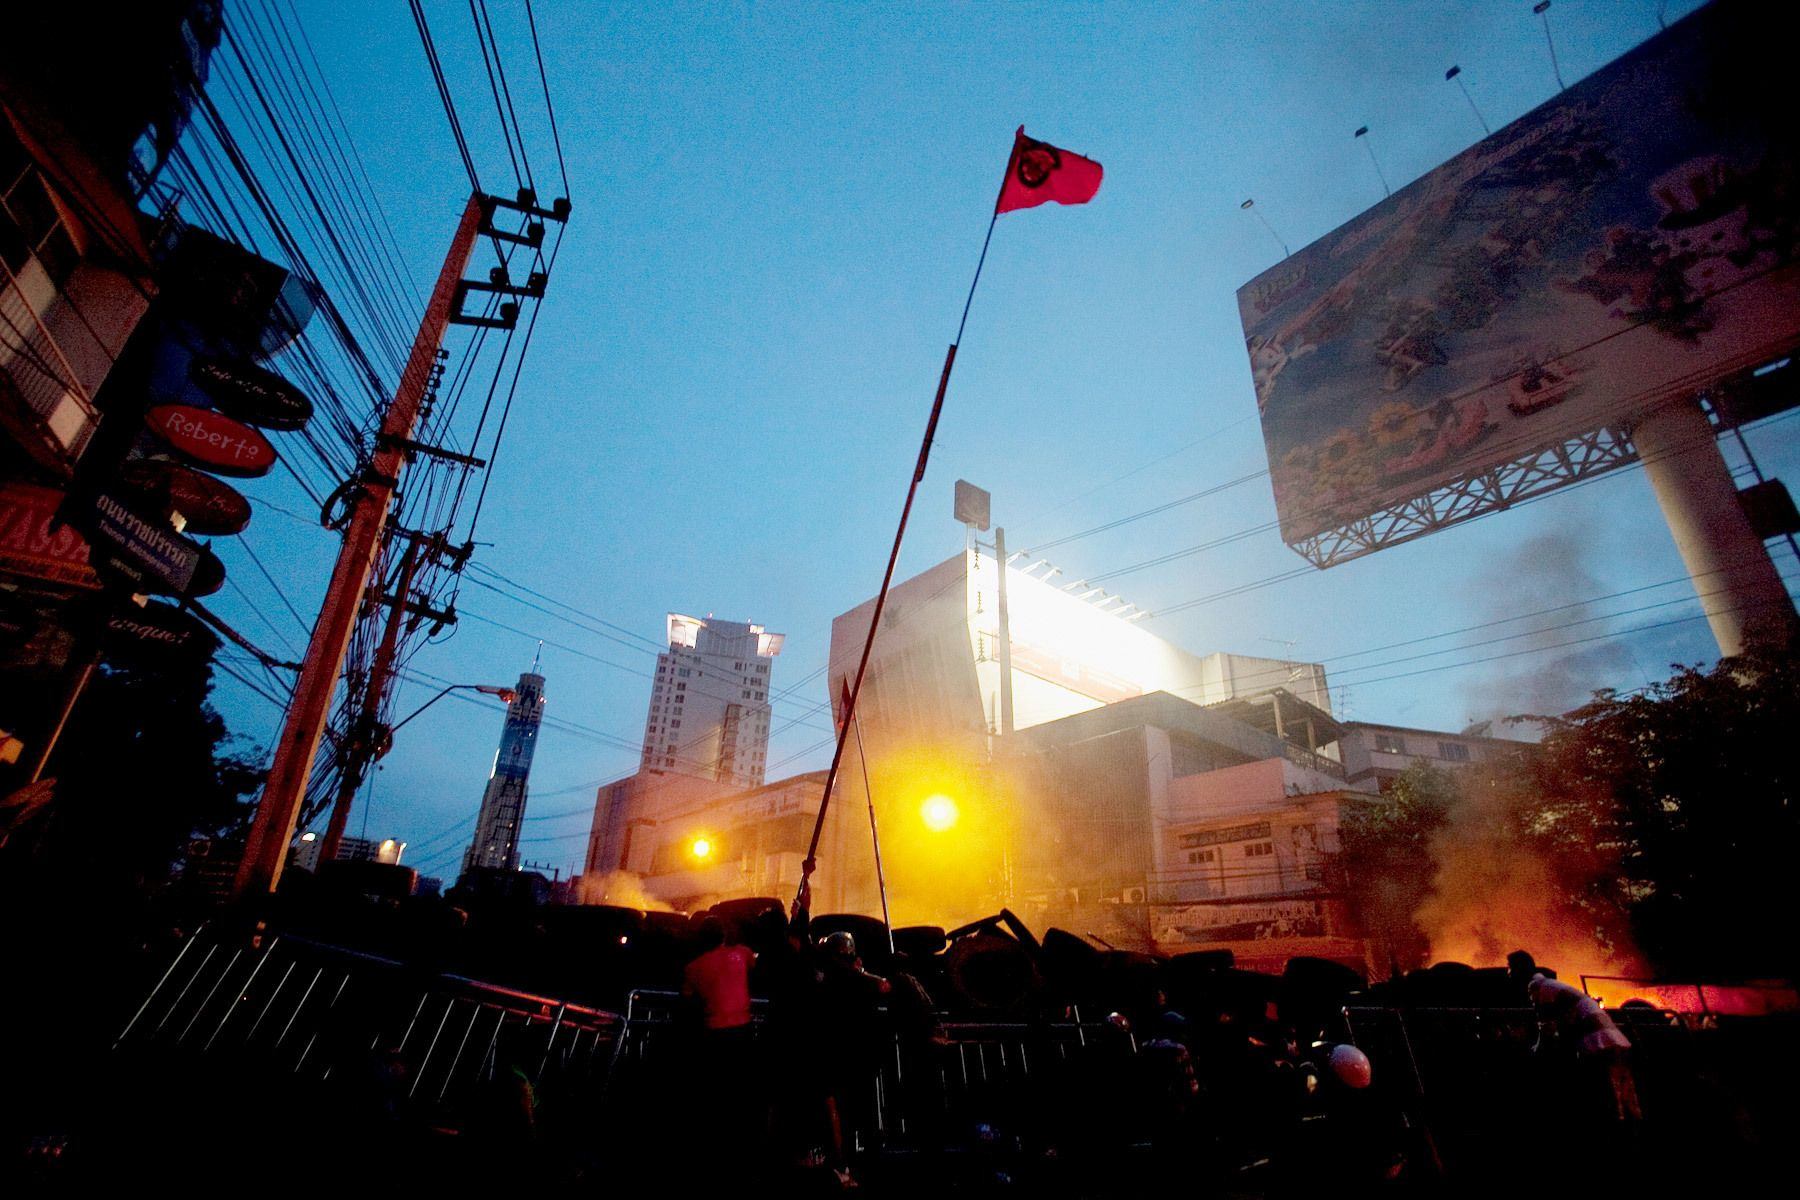 Members of the United Front for Democracy Against Dictatorship(UDD) fly a red flag during a clash with soldiers.